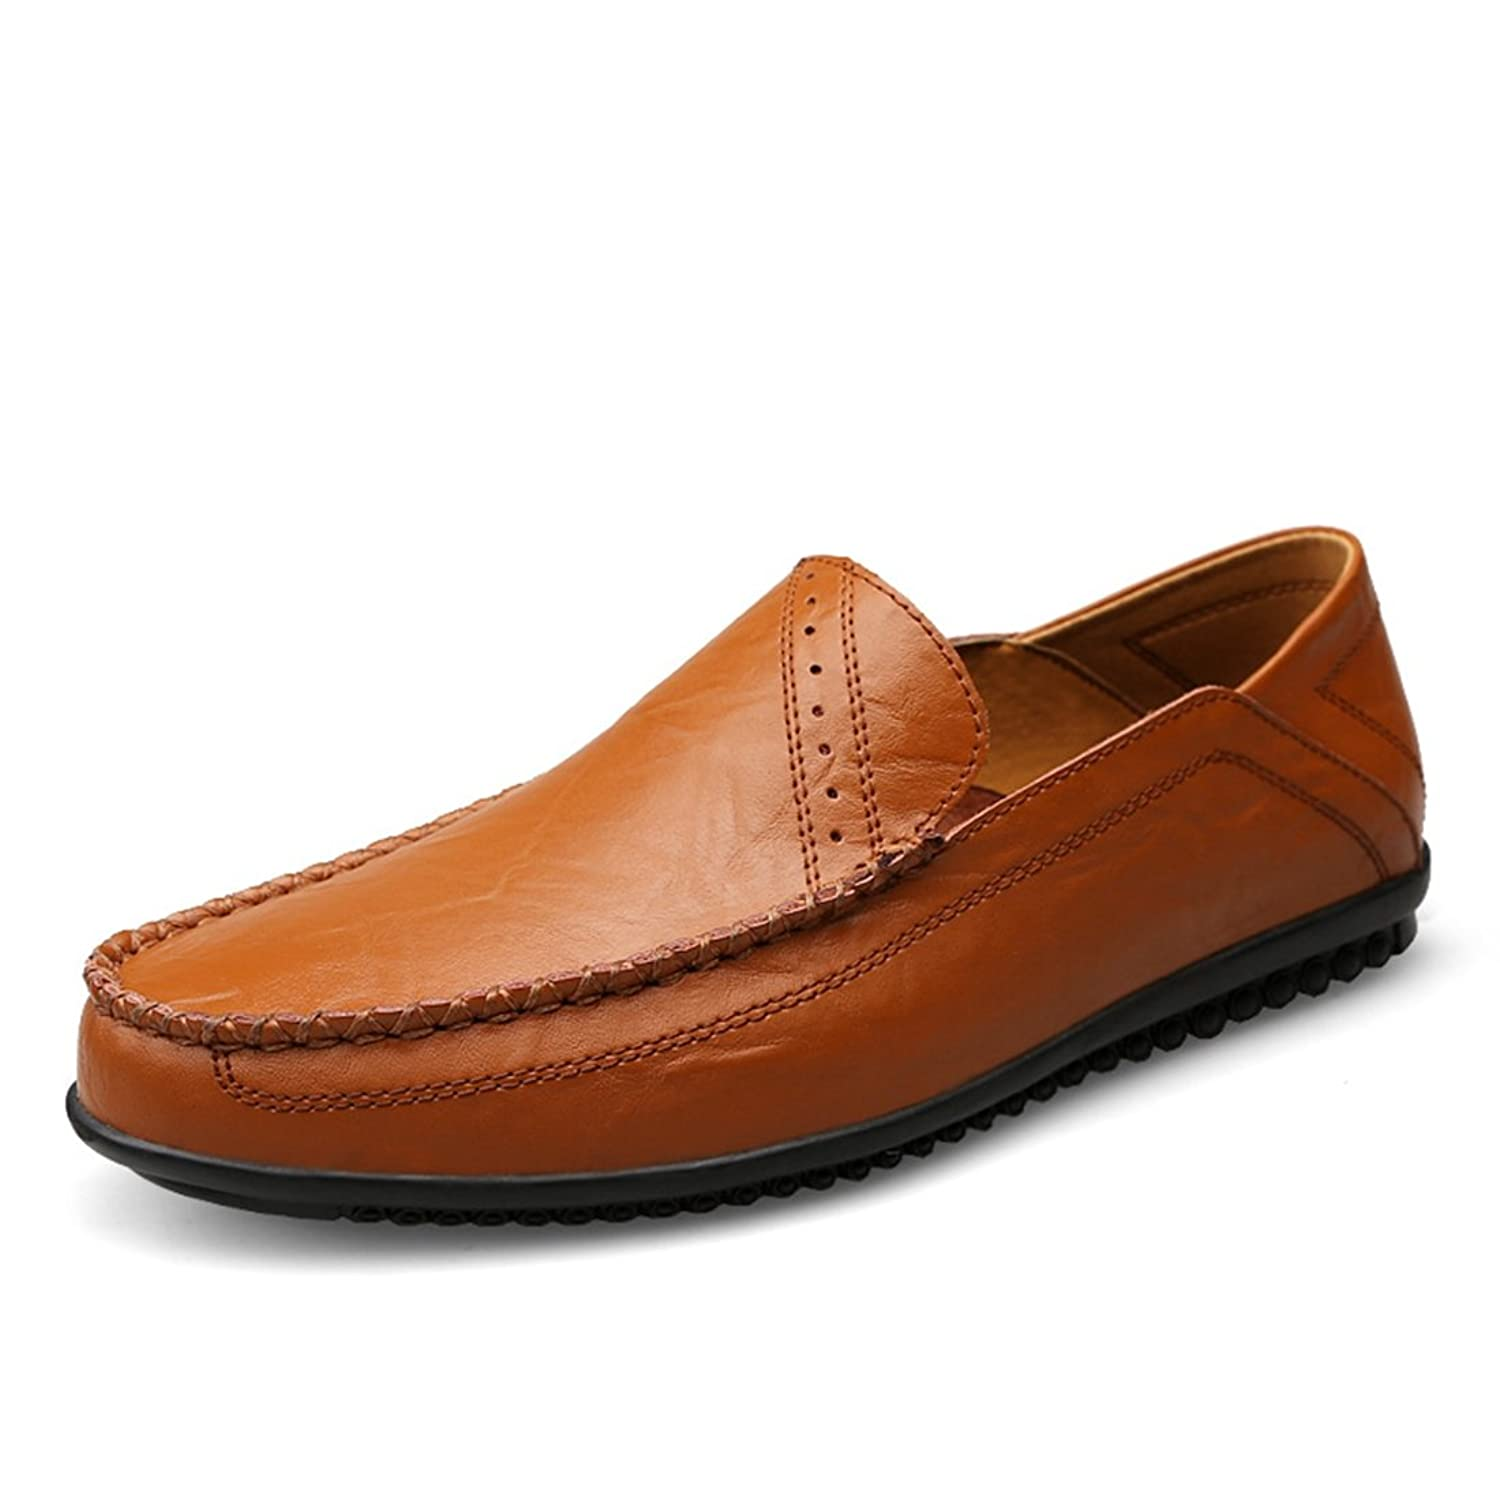 Boy's Men's Simple Solid Slip-Ons Casual Penny Loafers